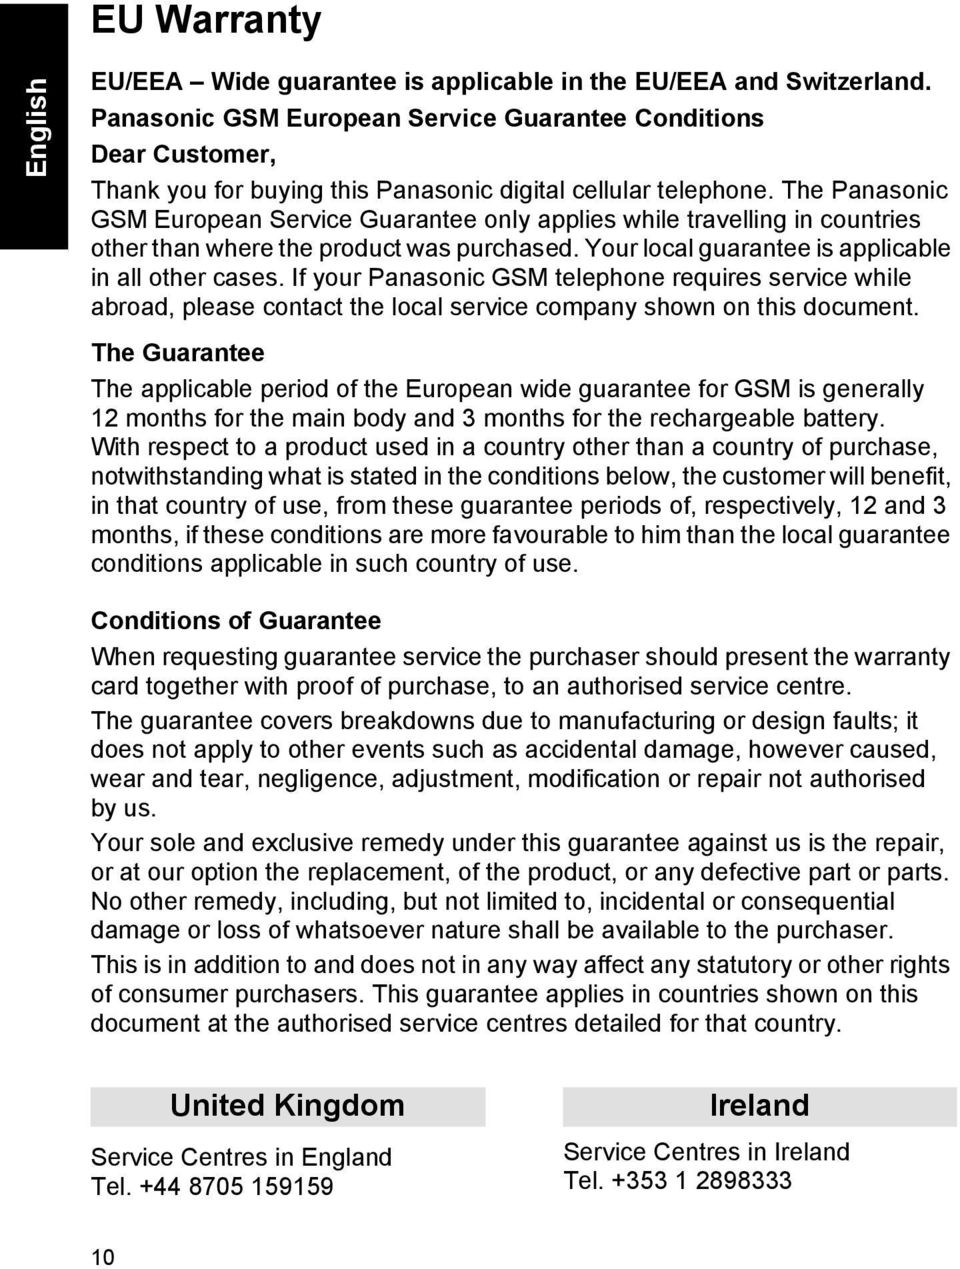 The Panasonic GSM European Service Guarantee only applies while travelling in countries other than where the product was purchased. Your local guarantee is applicable in all other cases.